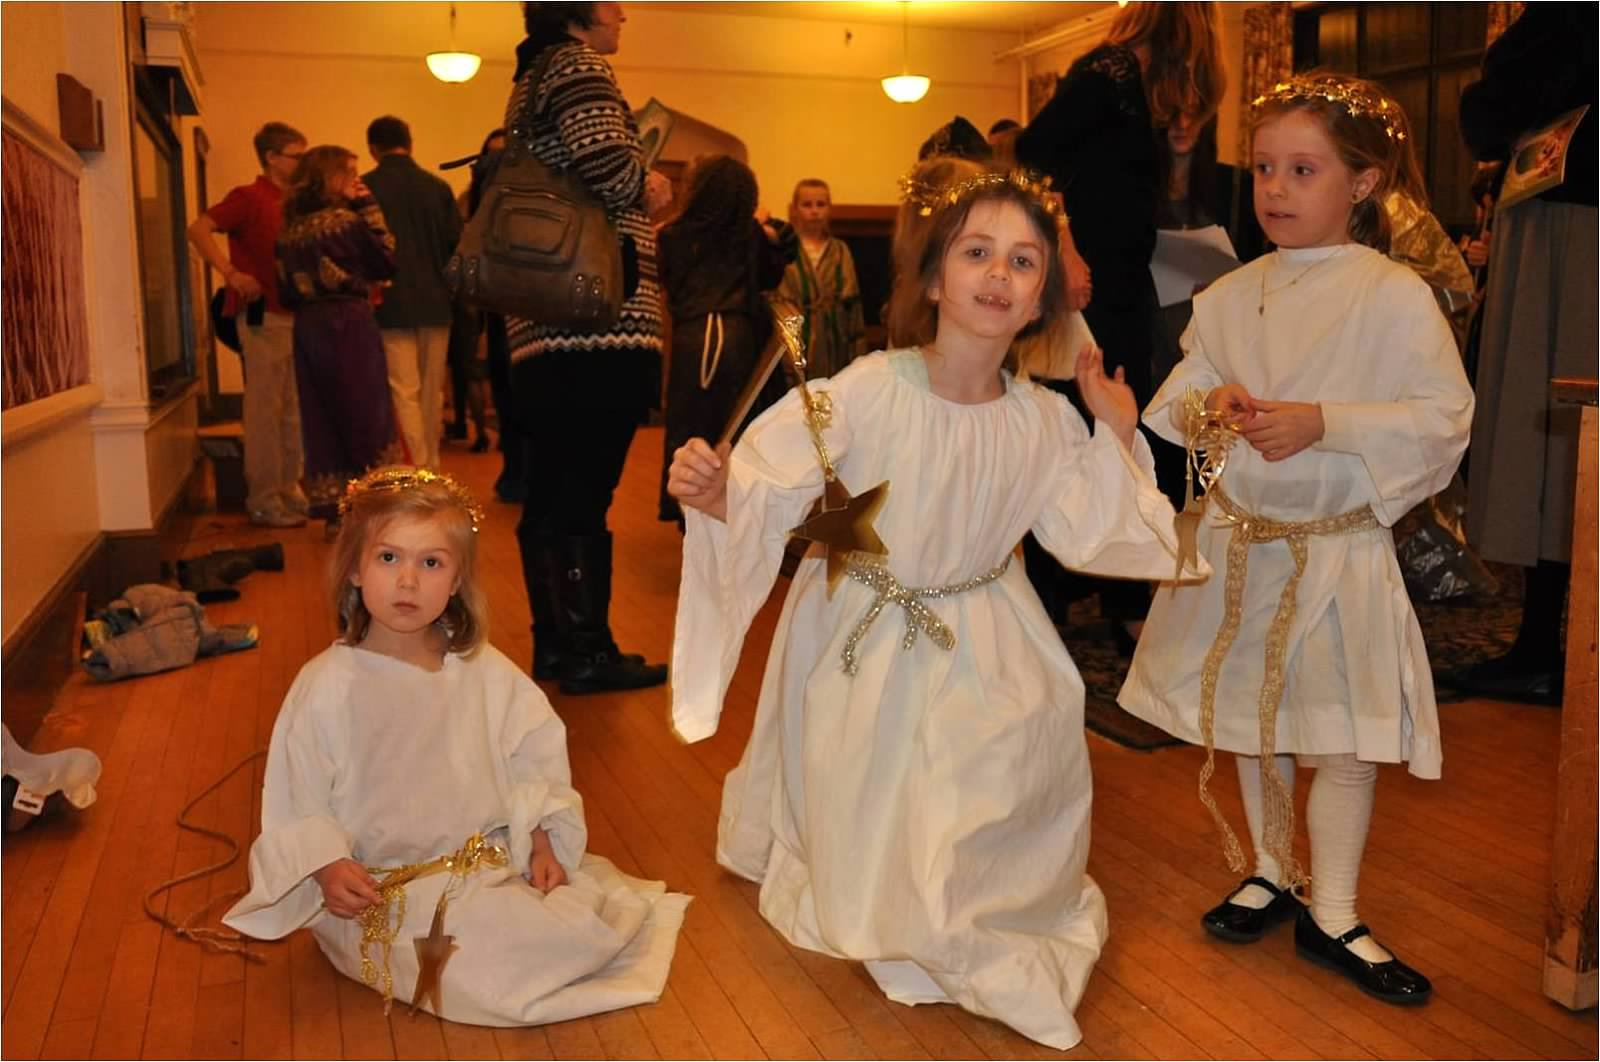 Backstage at the Christmas pageant